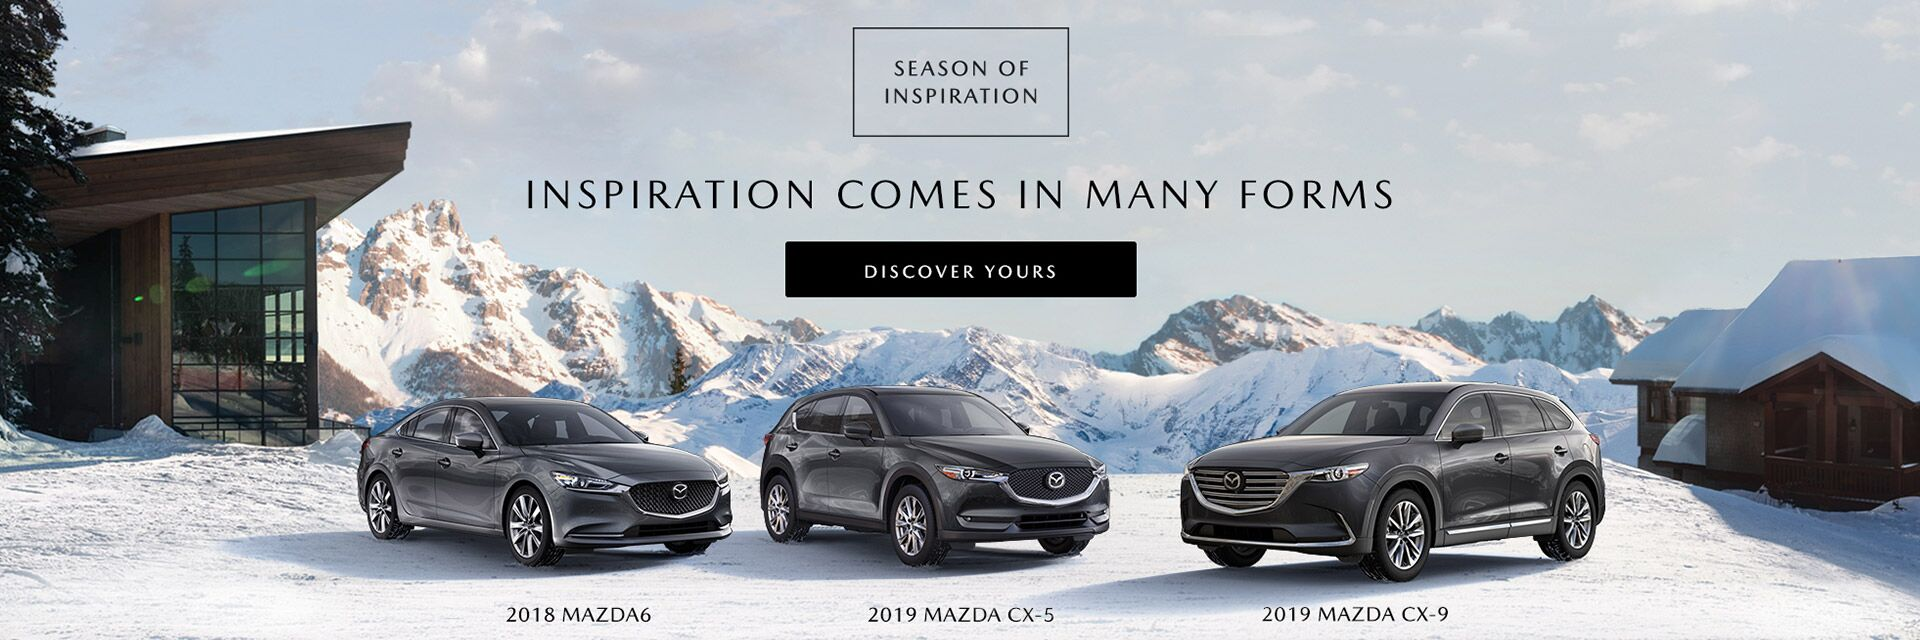 Season of Inspiration